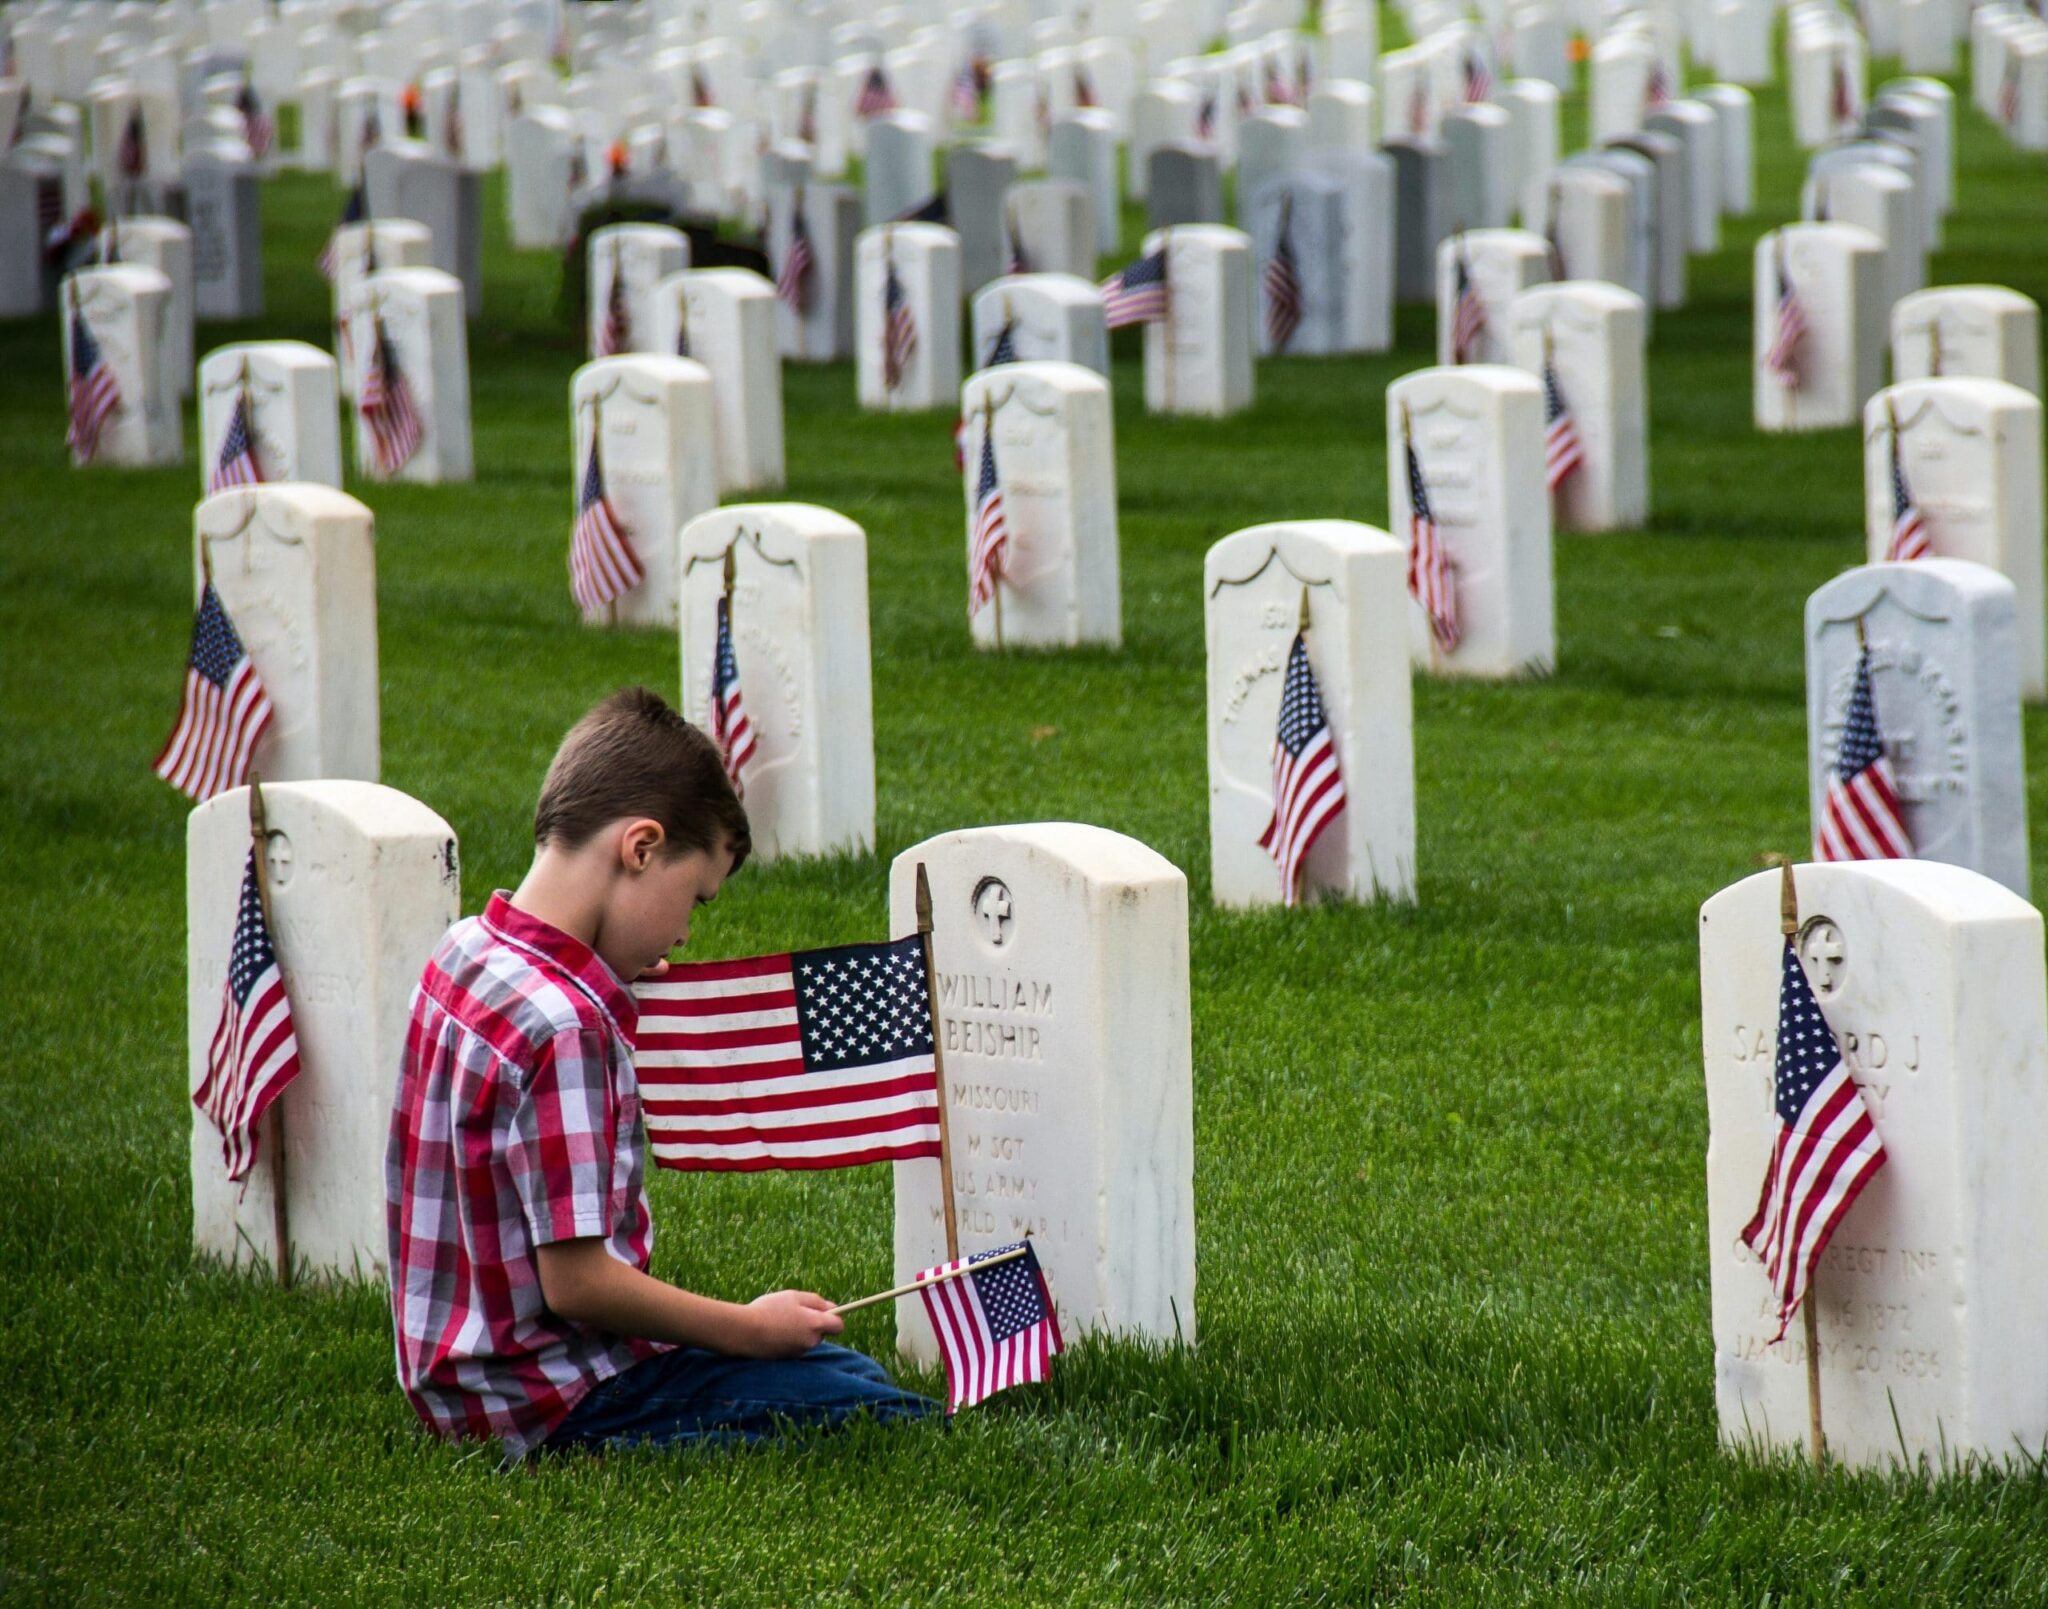 Richard Connor: RLC's Memorial Day notebook